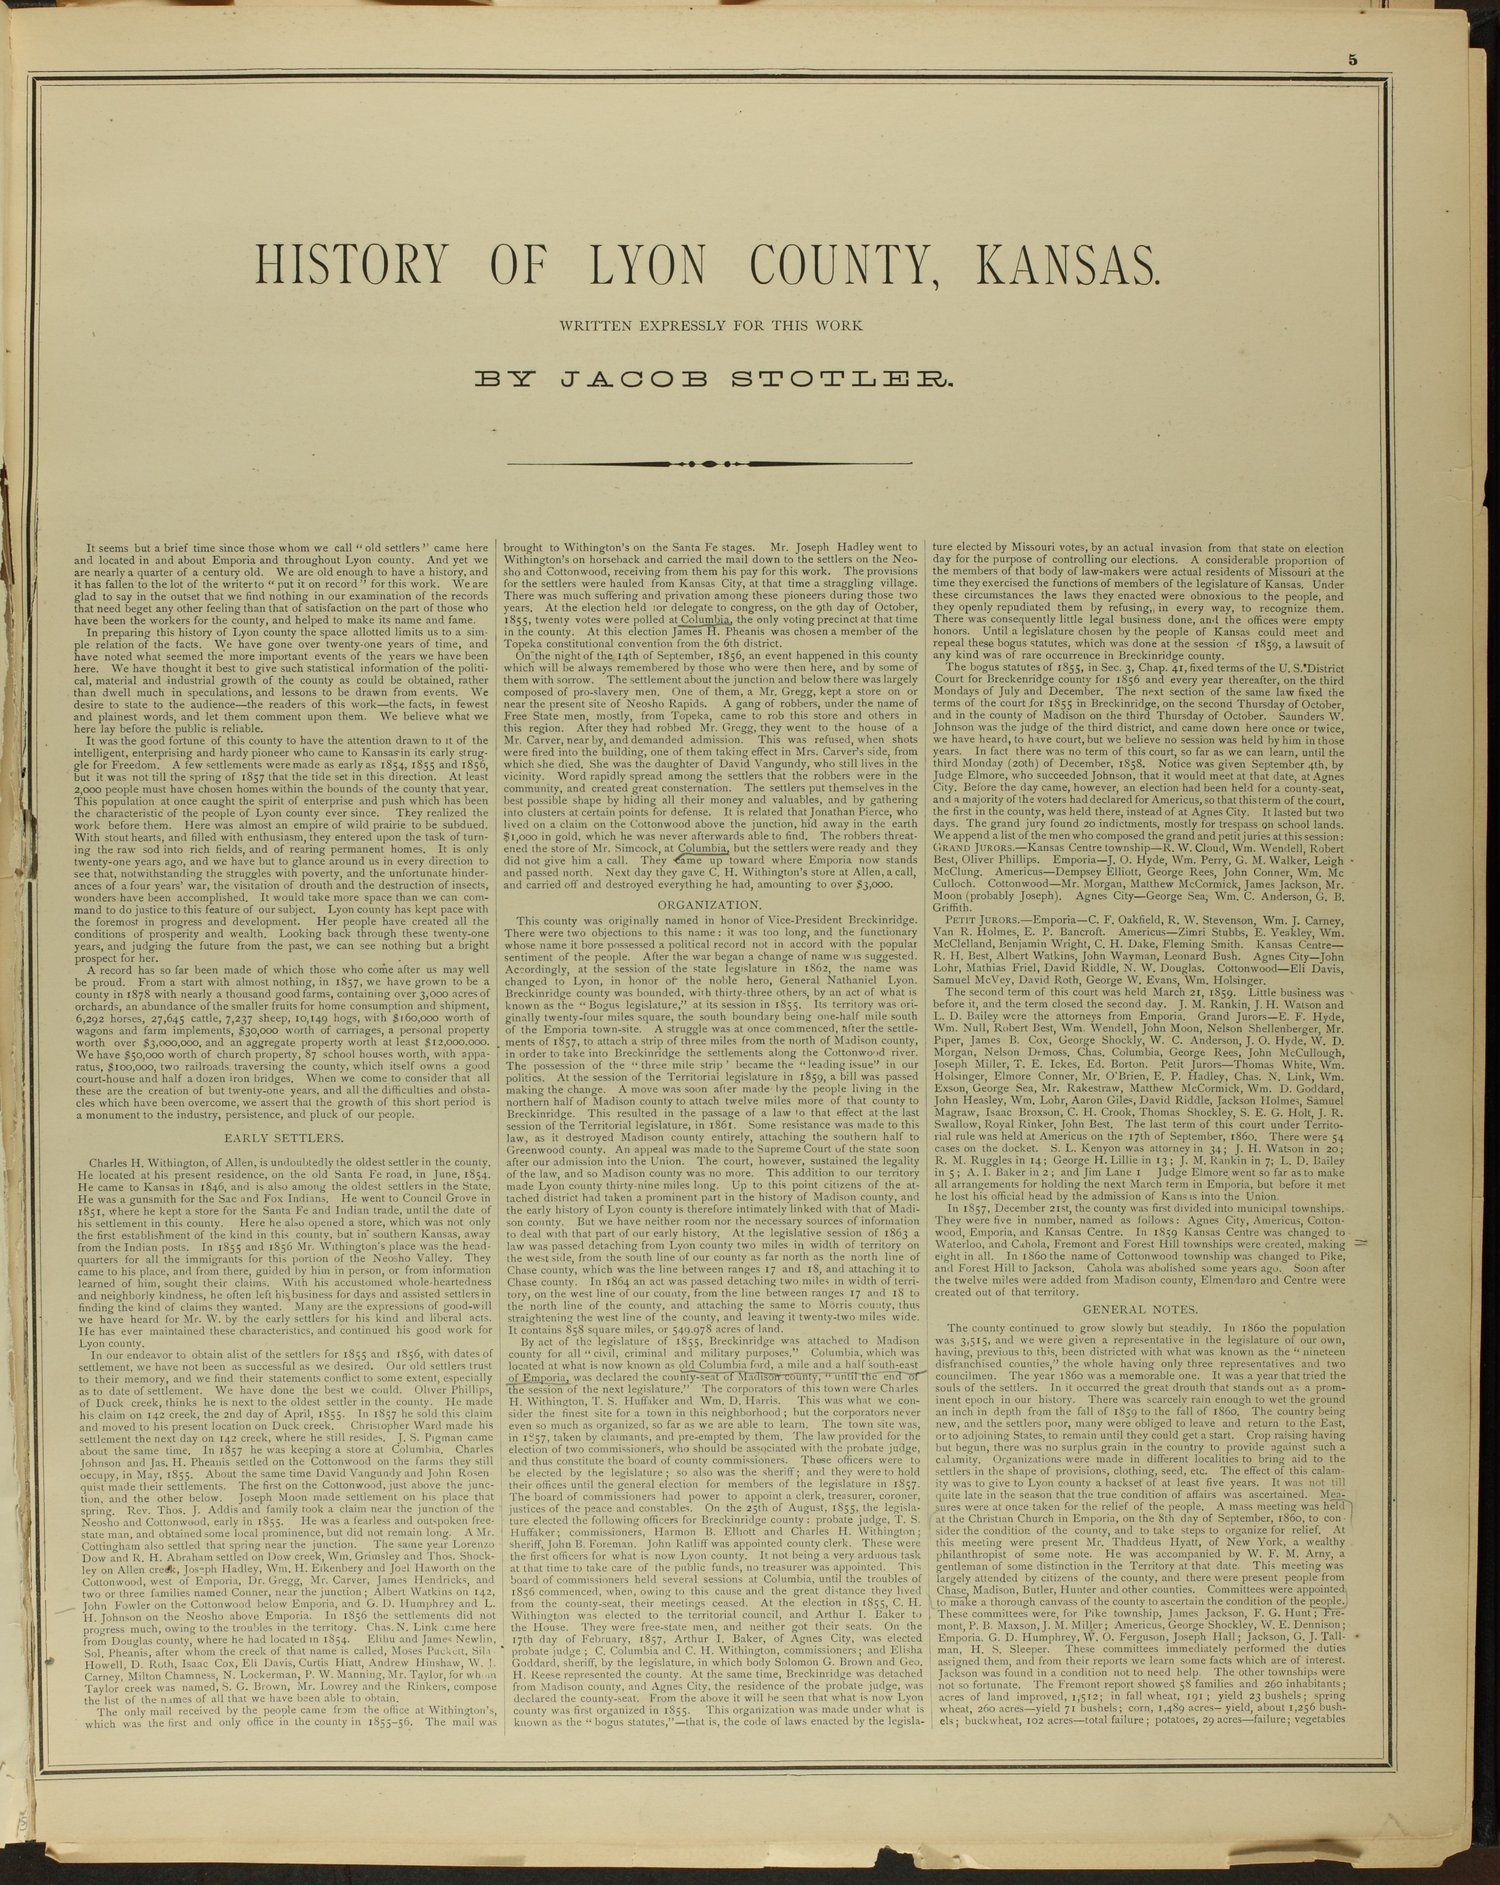 An illustrated historical atlas of Lyon county, Kansas - 5